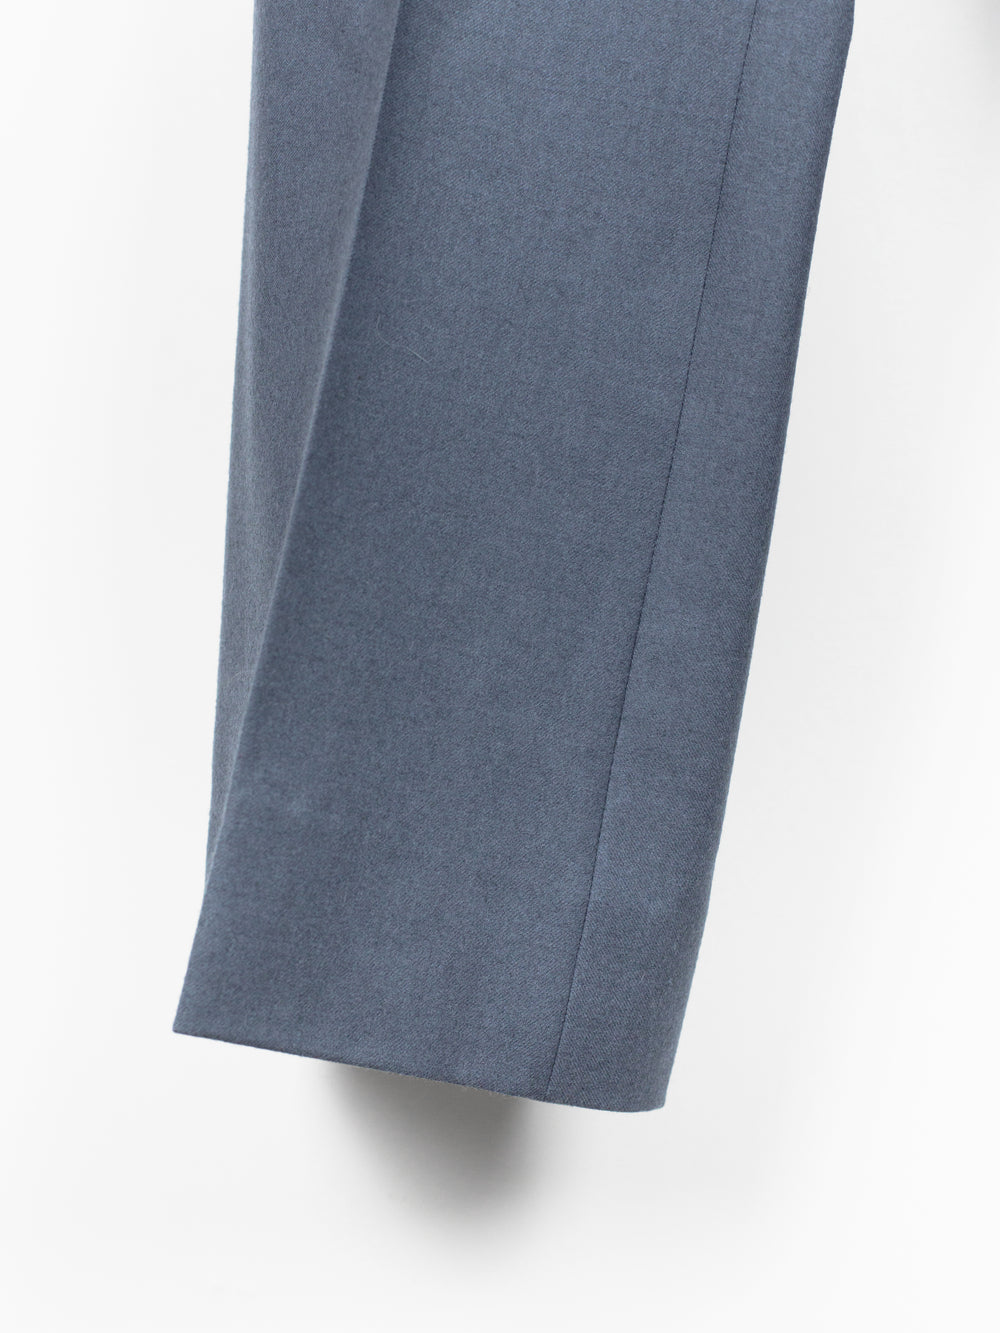 Miu Miu Men's Grey-Blue Flared Wool Trousers